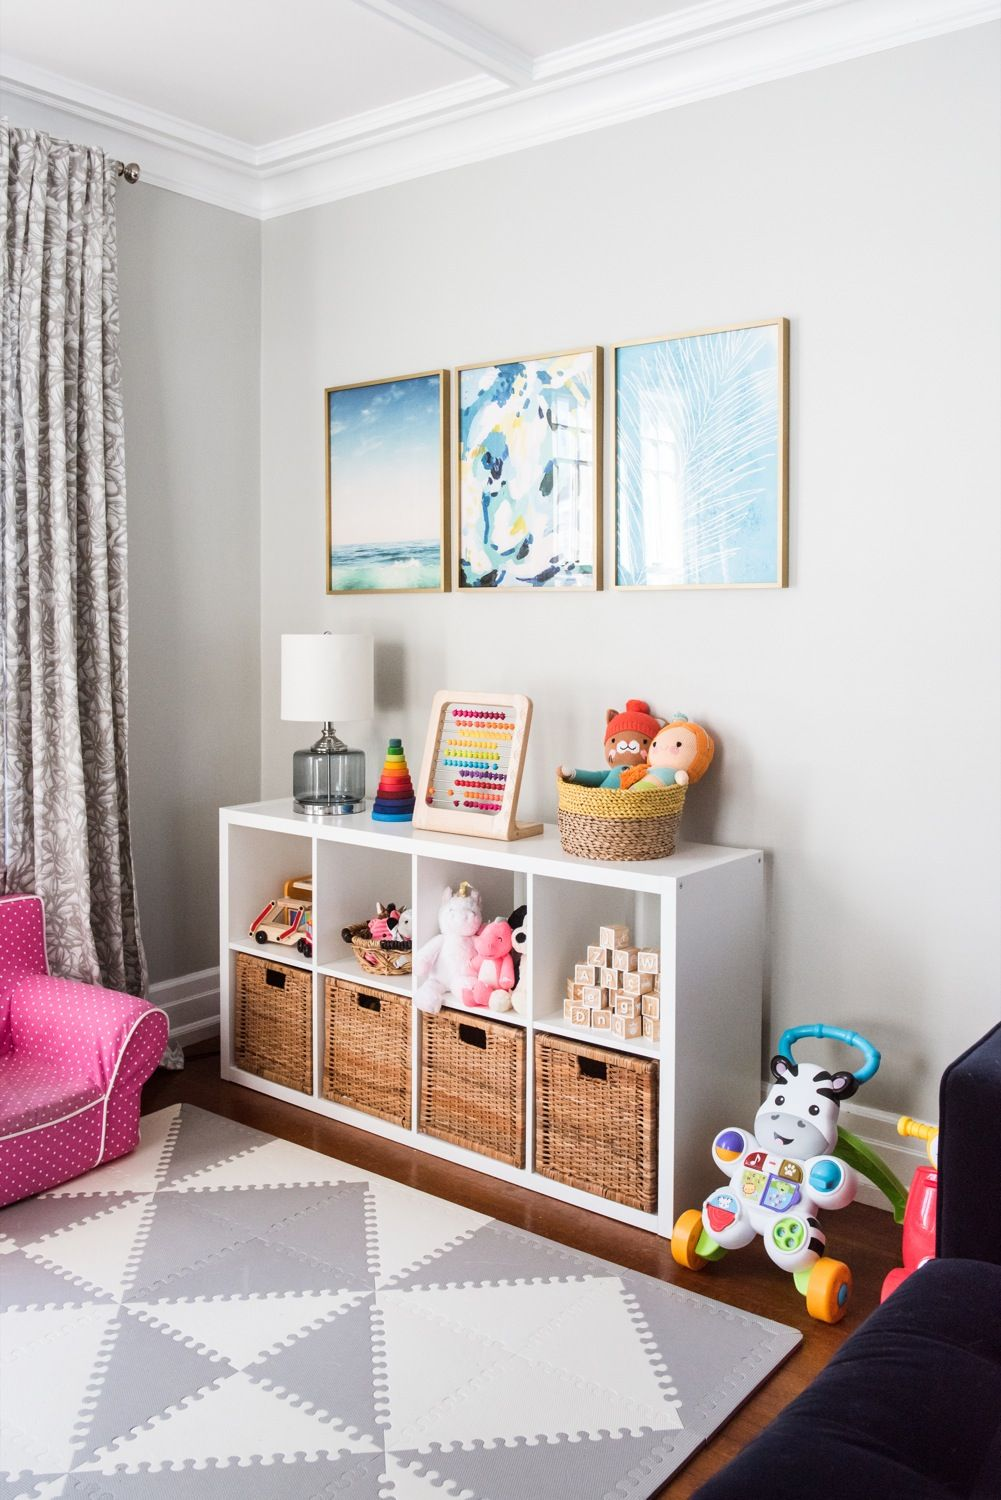 Emerson S Modern Playroom Tour Living Room Playroom Modern Playroom Colorful Playroom